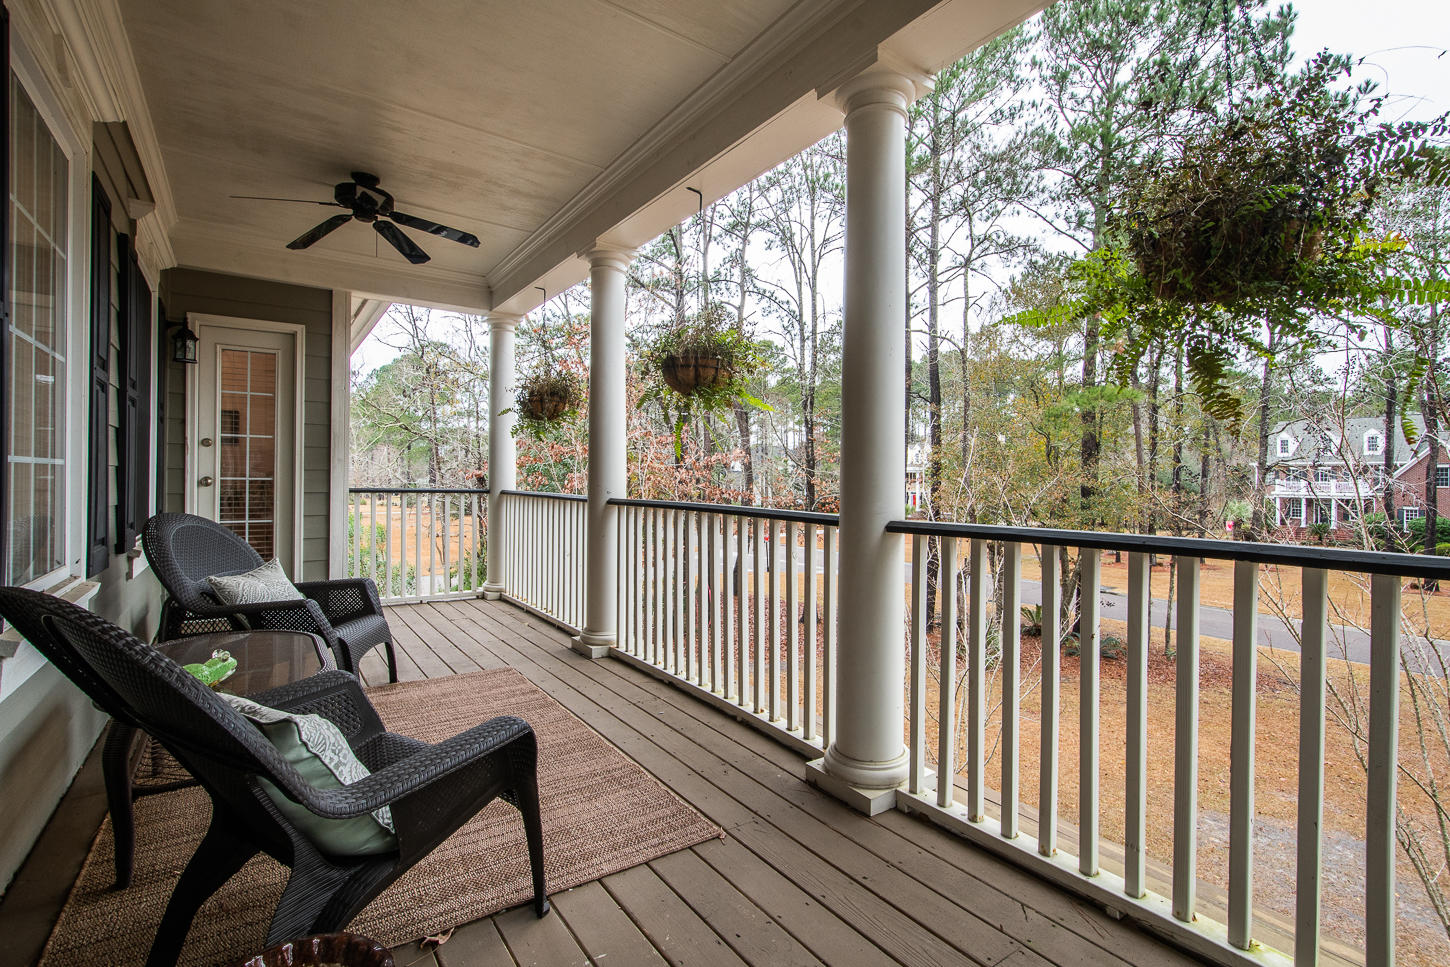 Dunes West Homes For Sale - 1794 Shell Ring, Mount Pleasant, SC - 29